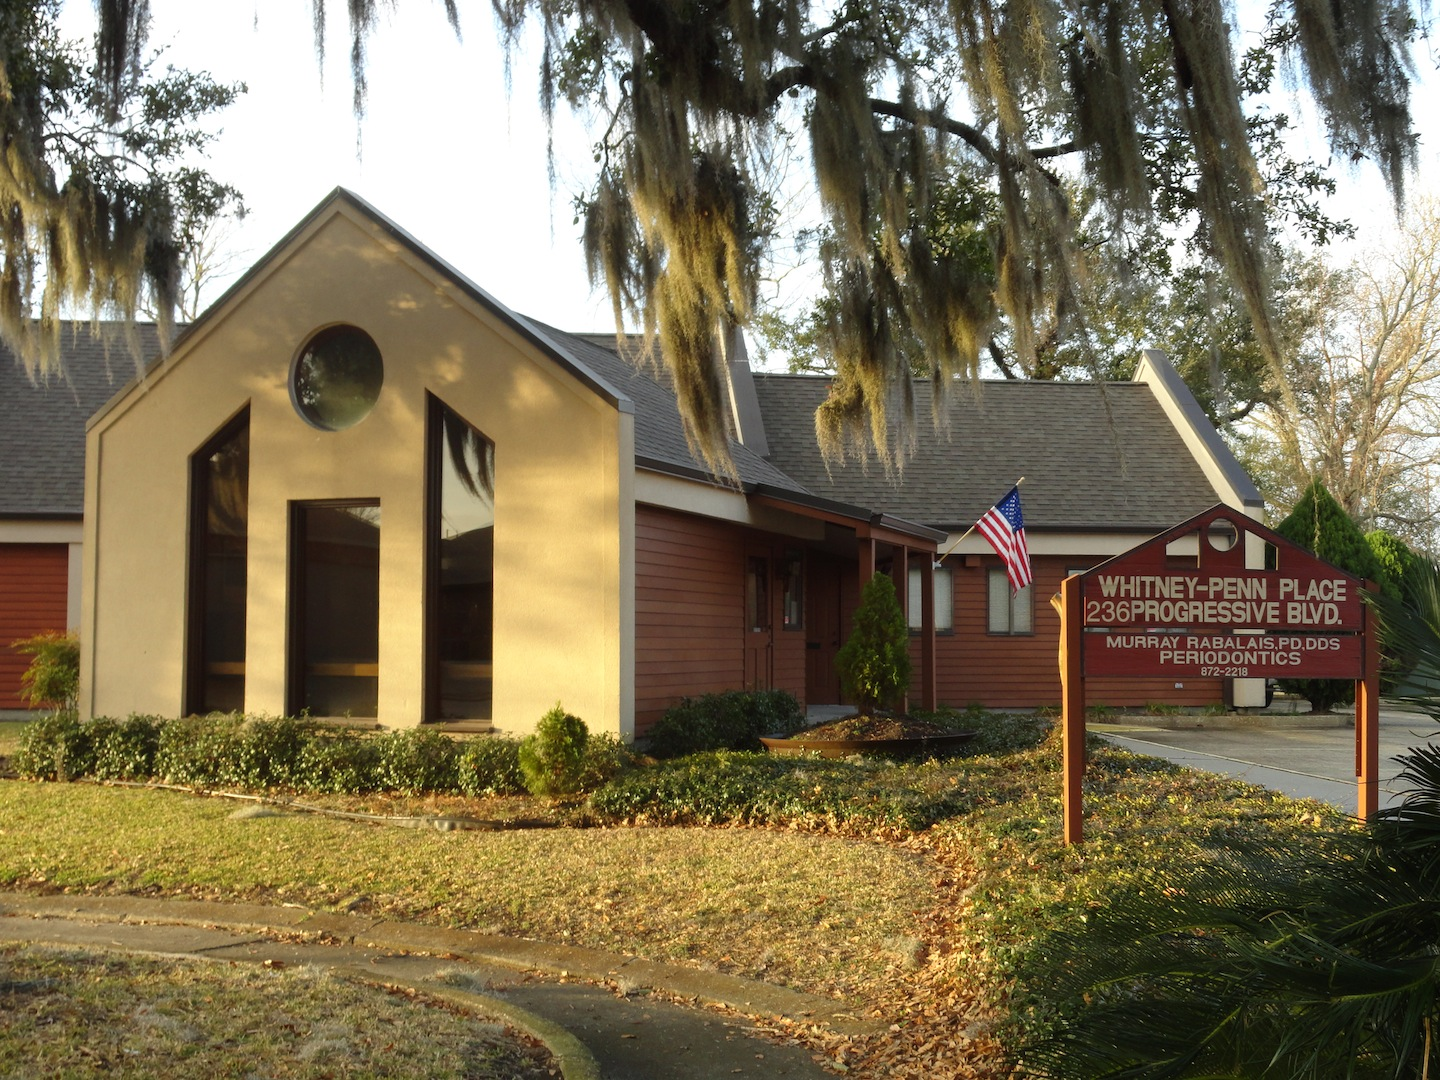 Picture of Dr. Rabalais' dental office in Houma, LA.